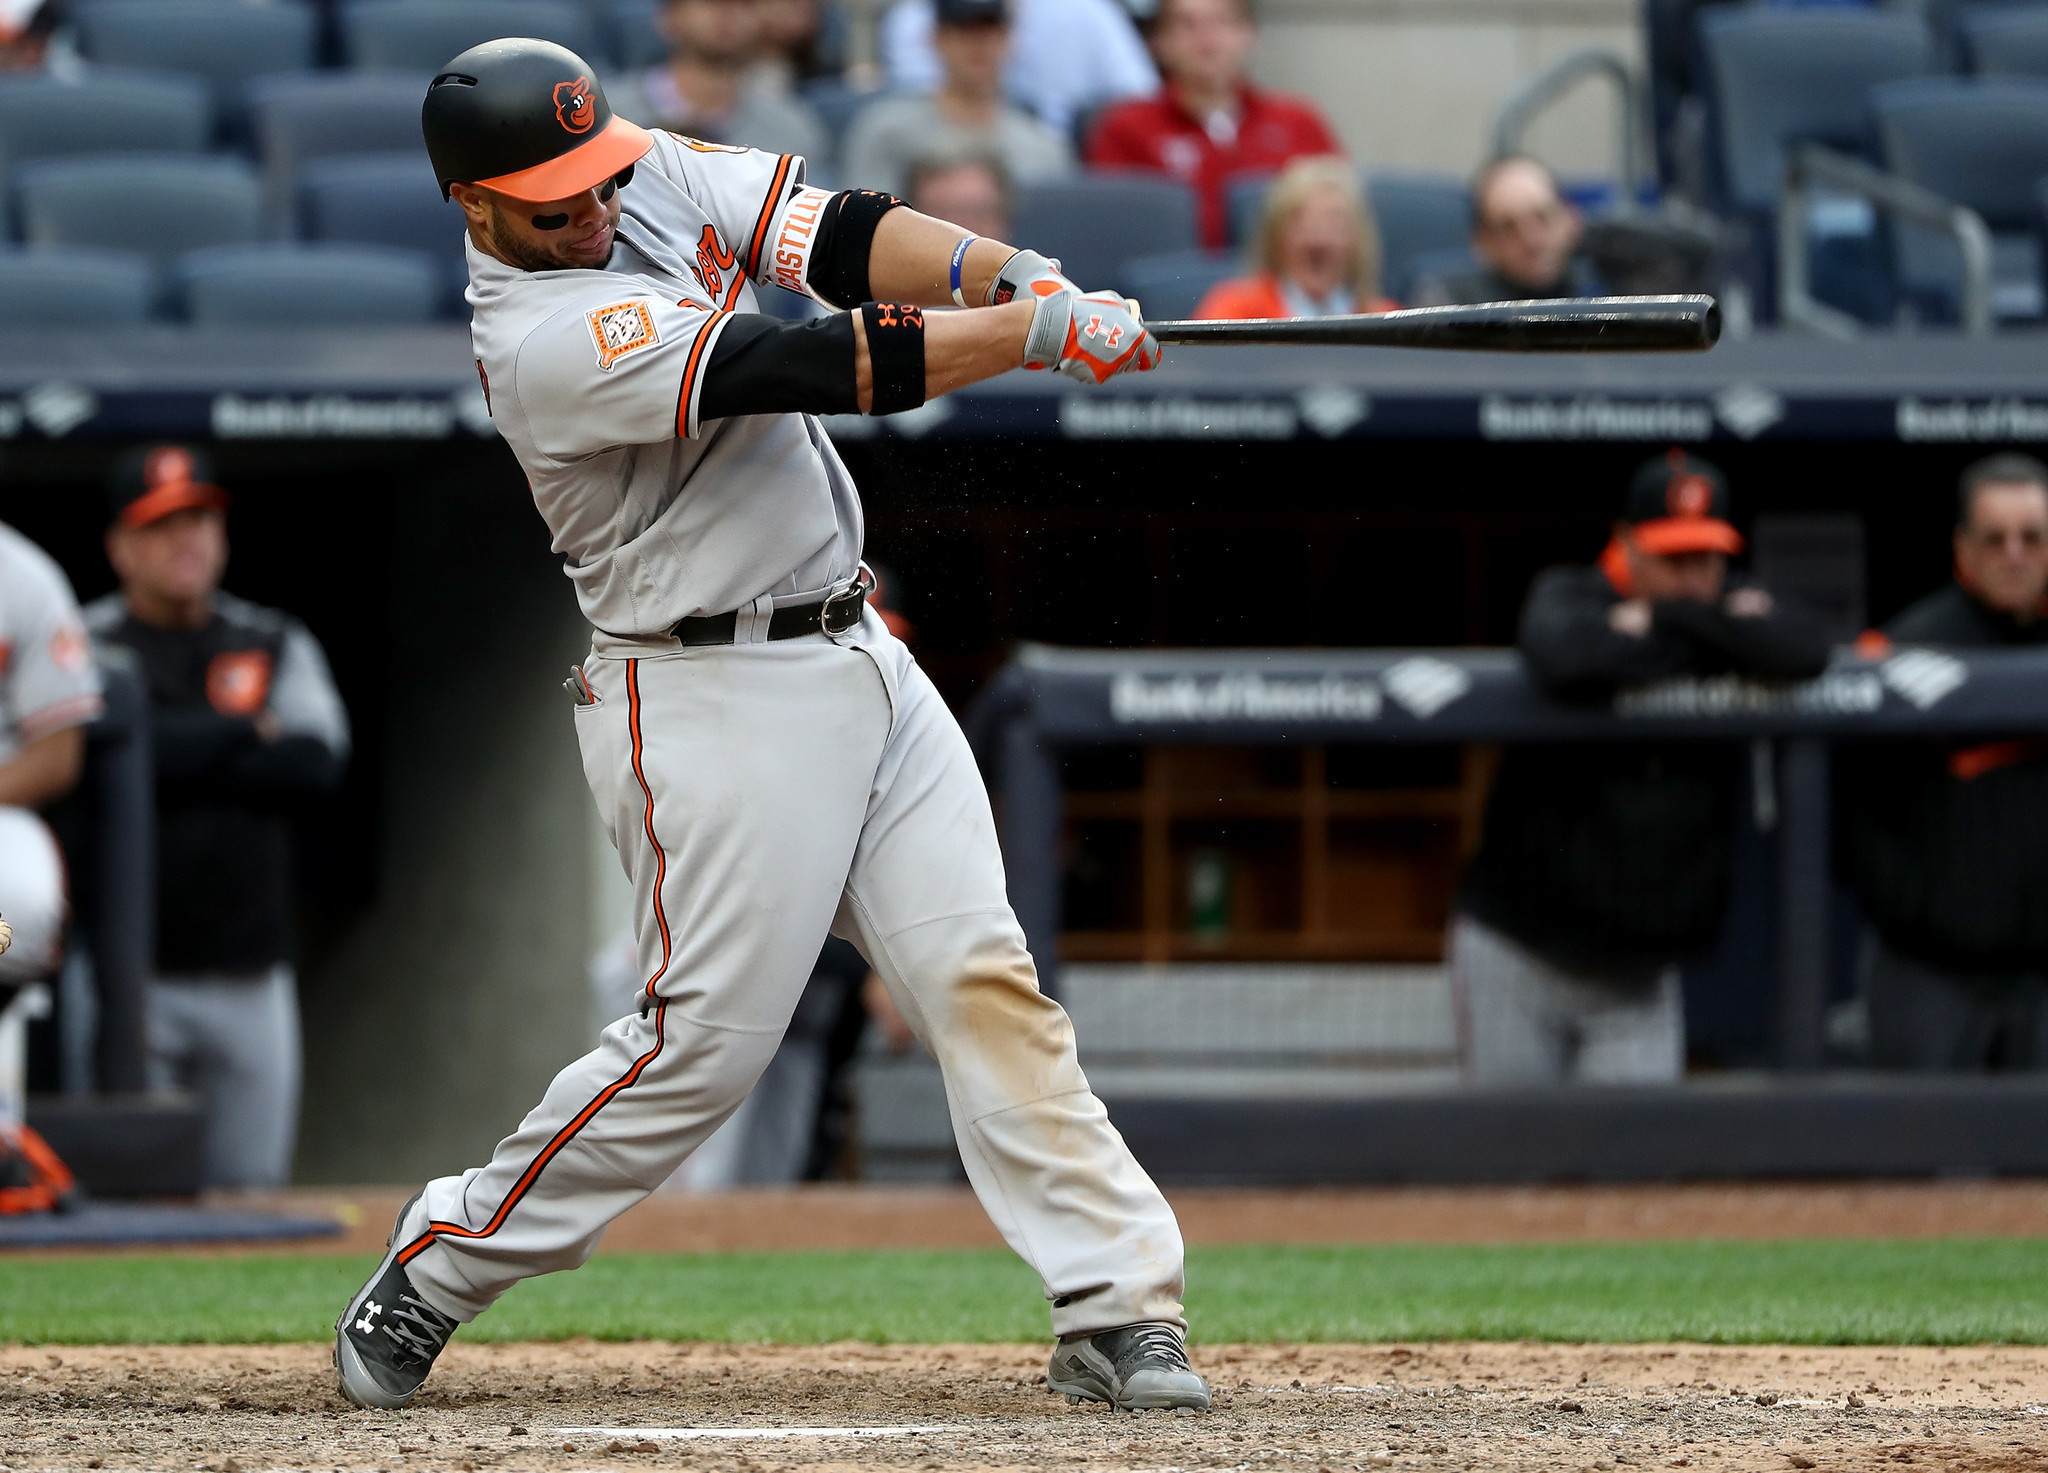 Bs-sp-orioles-notes-0511-20170510